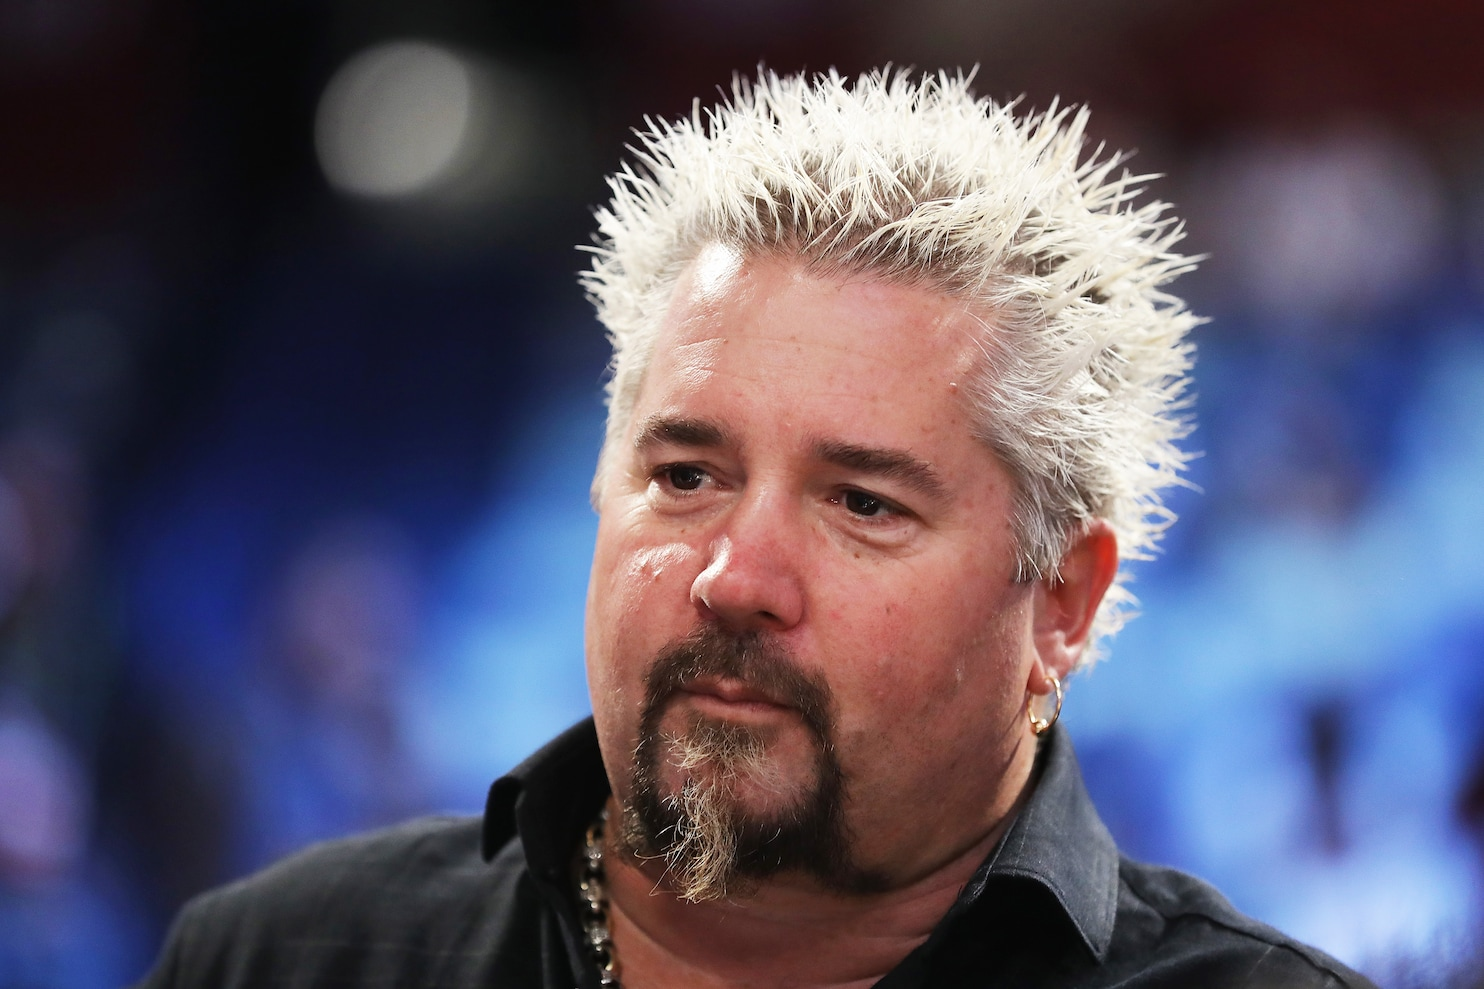 Guy Fieri is pulling the plug on perhaps the most mocked